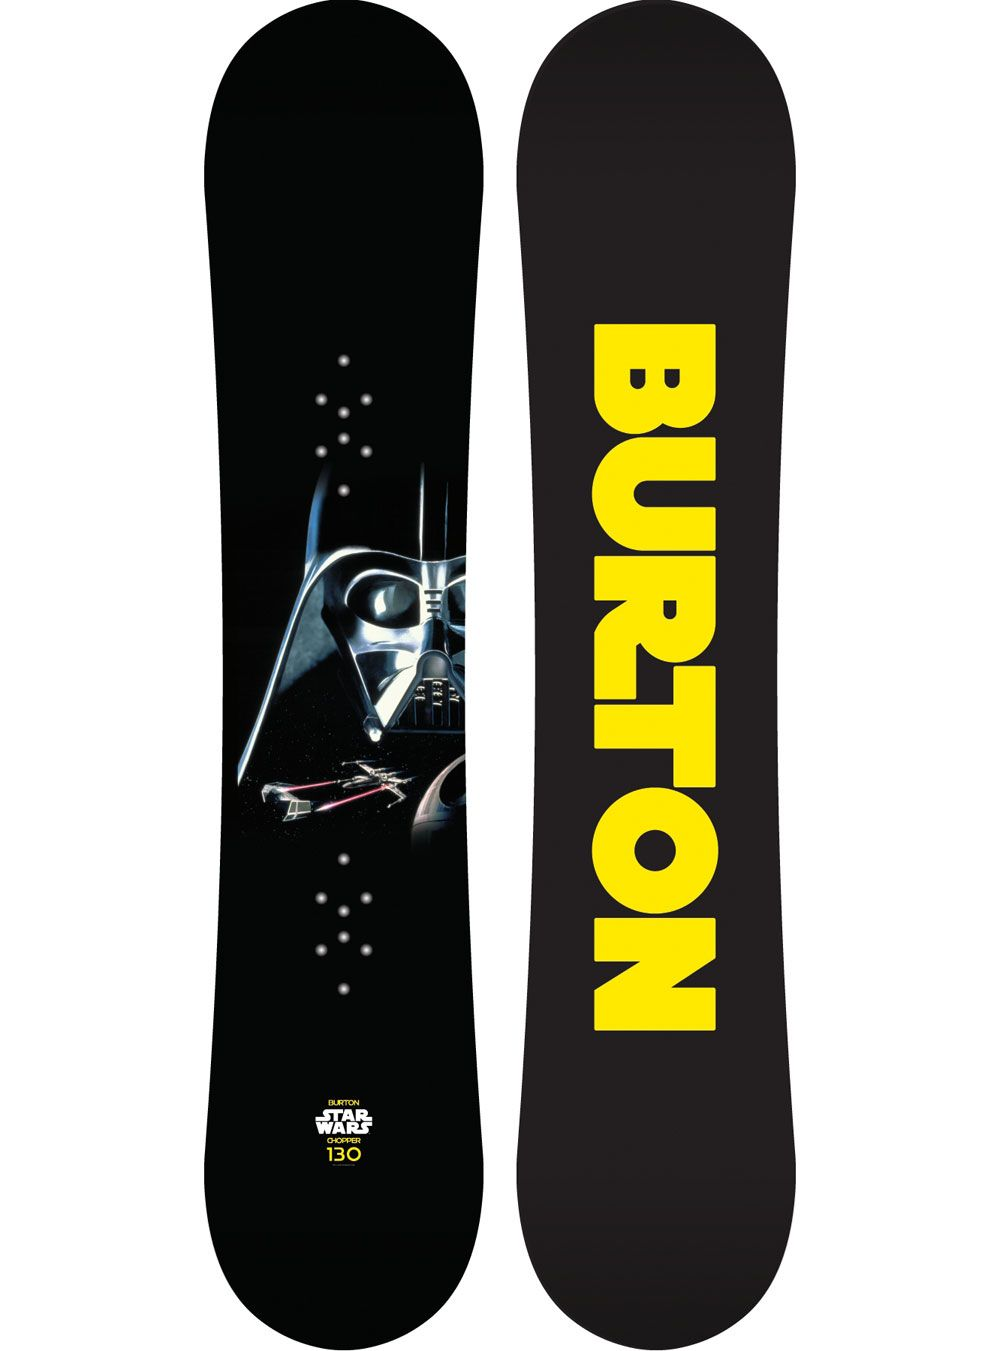 Star Wars Inspired Products From Burton Snowboards 4 Burton Snowboards Snowboarding Star Wars Inspired